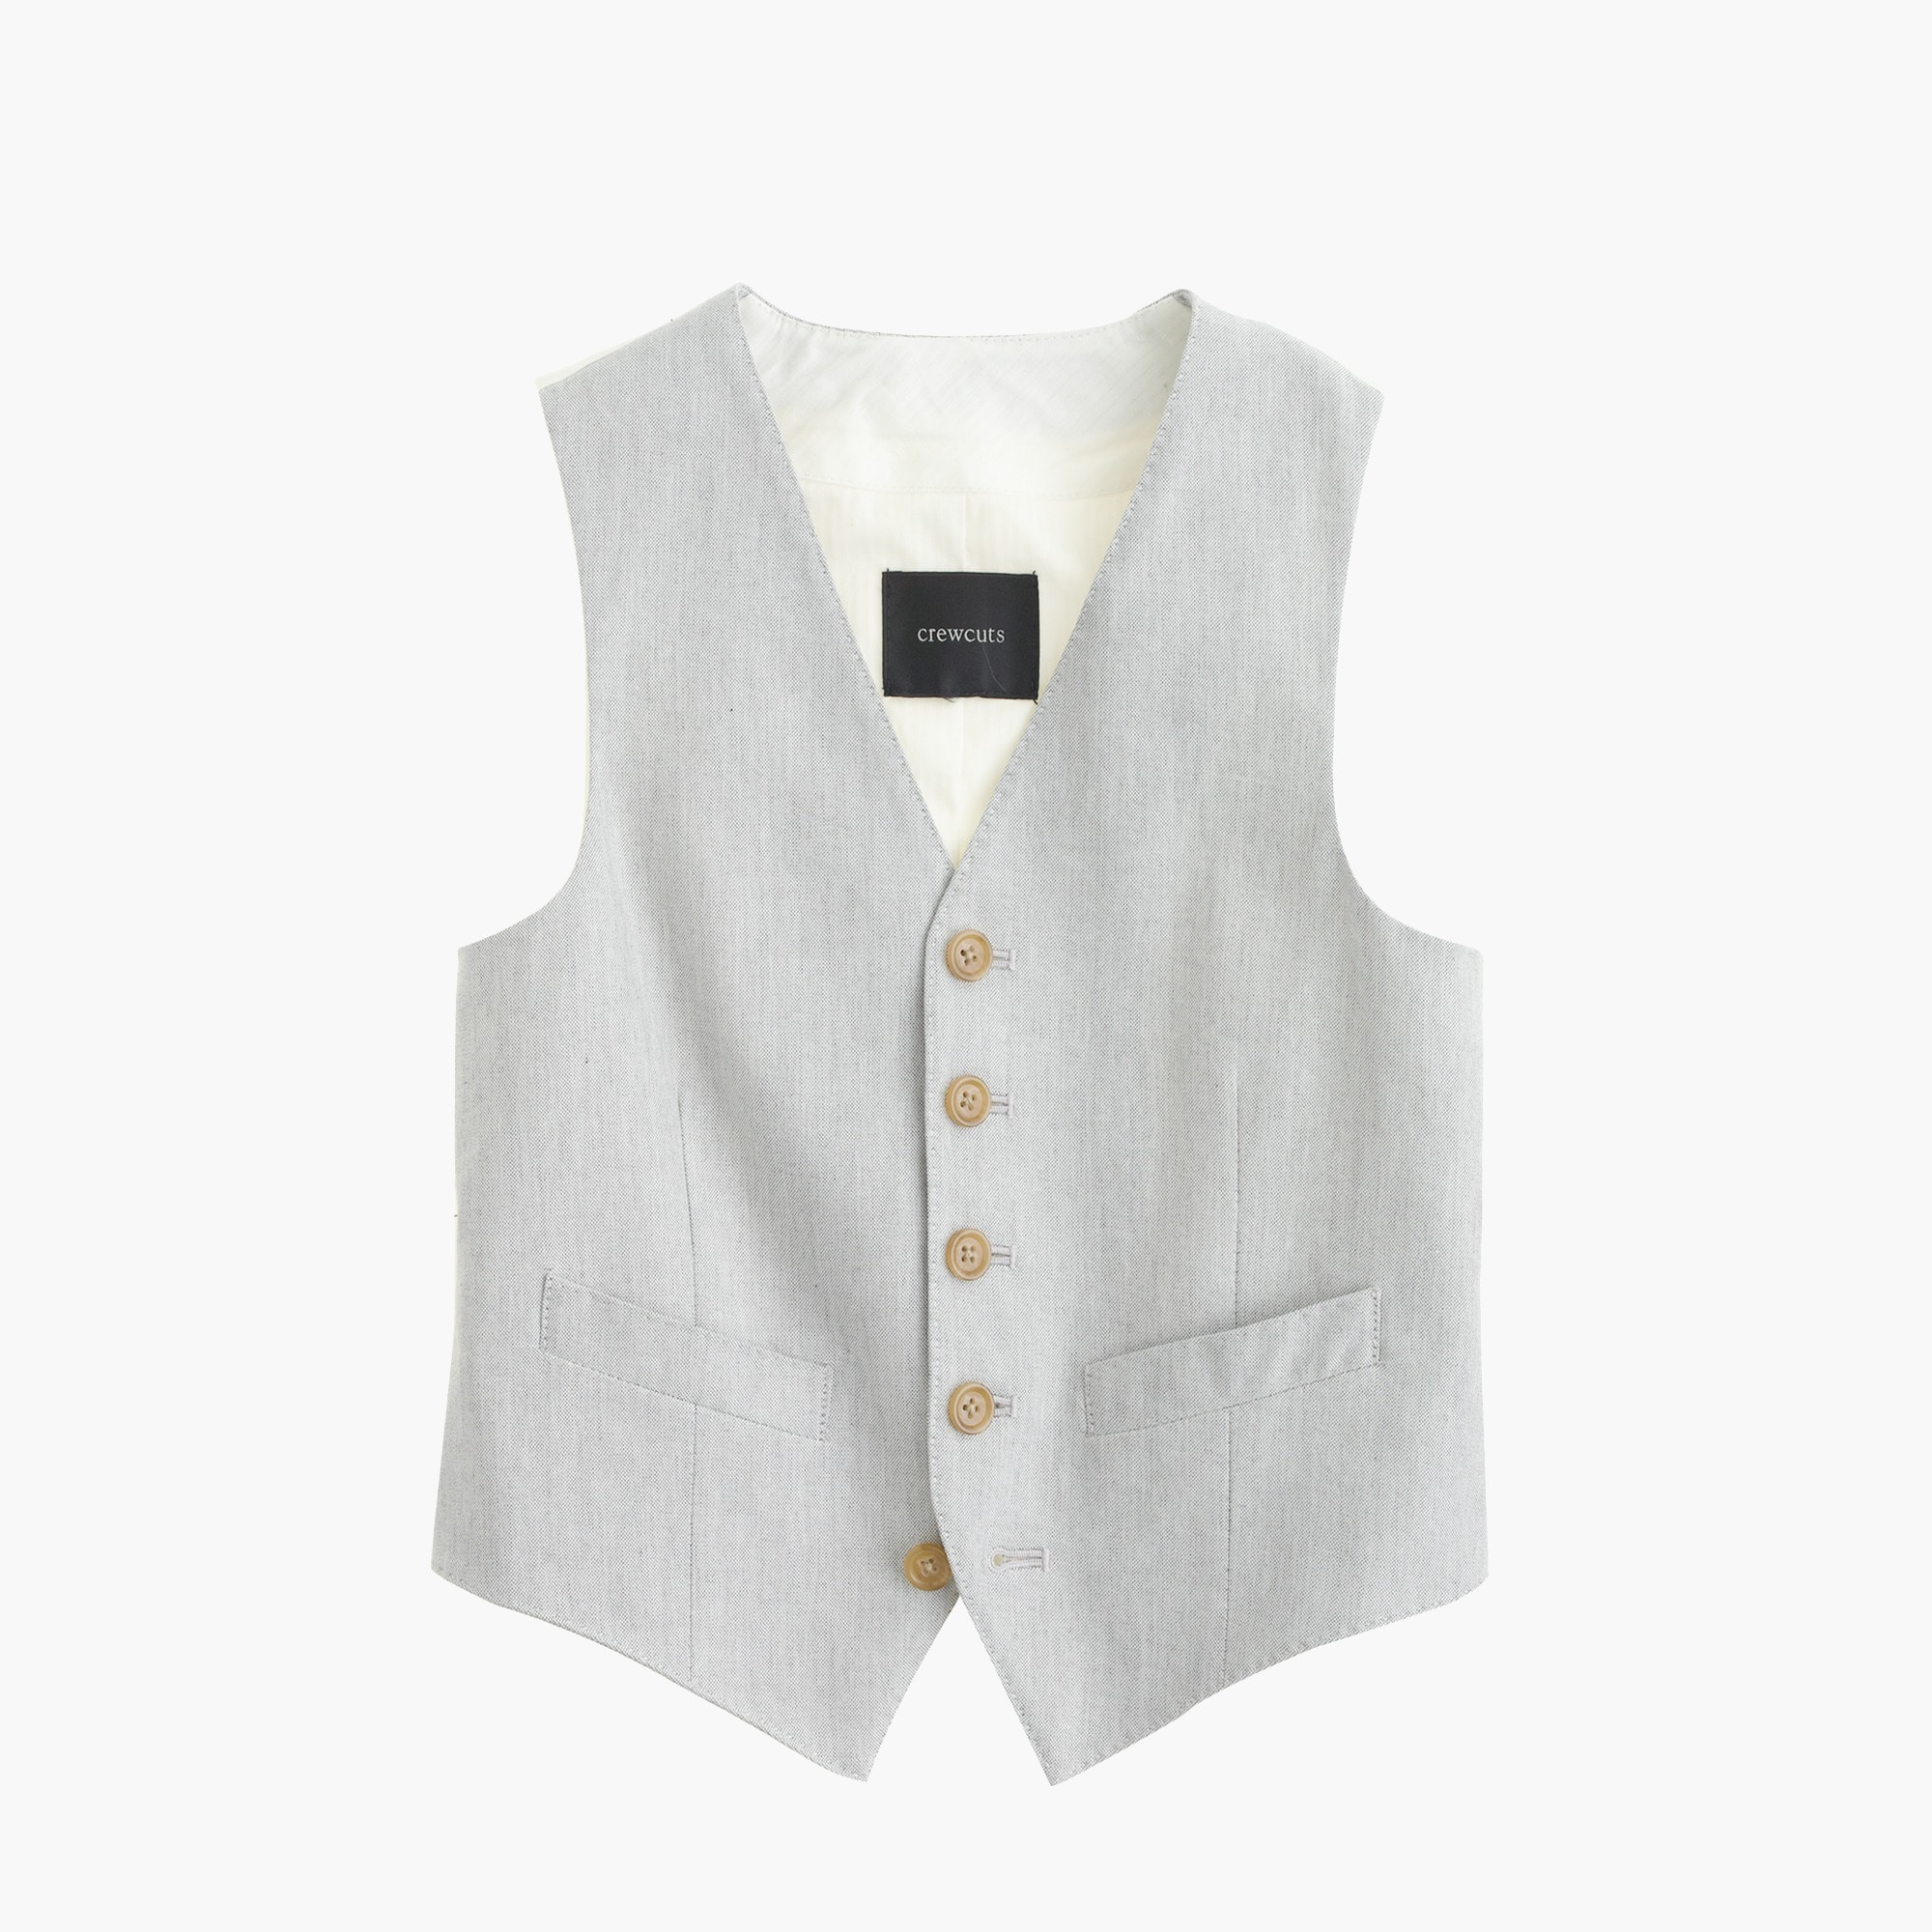 Boys' Ludlow suit vest in oxford cloth